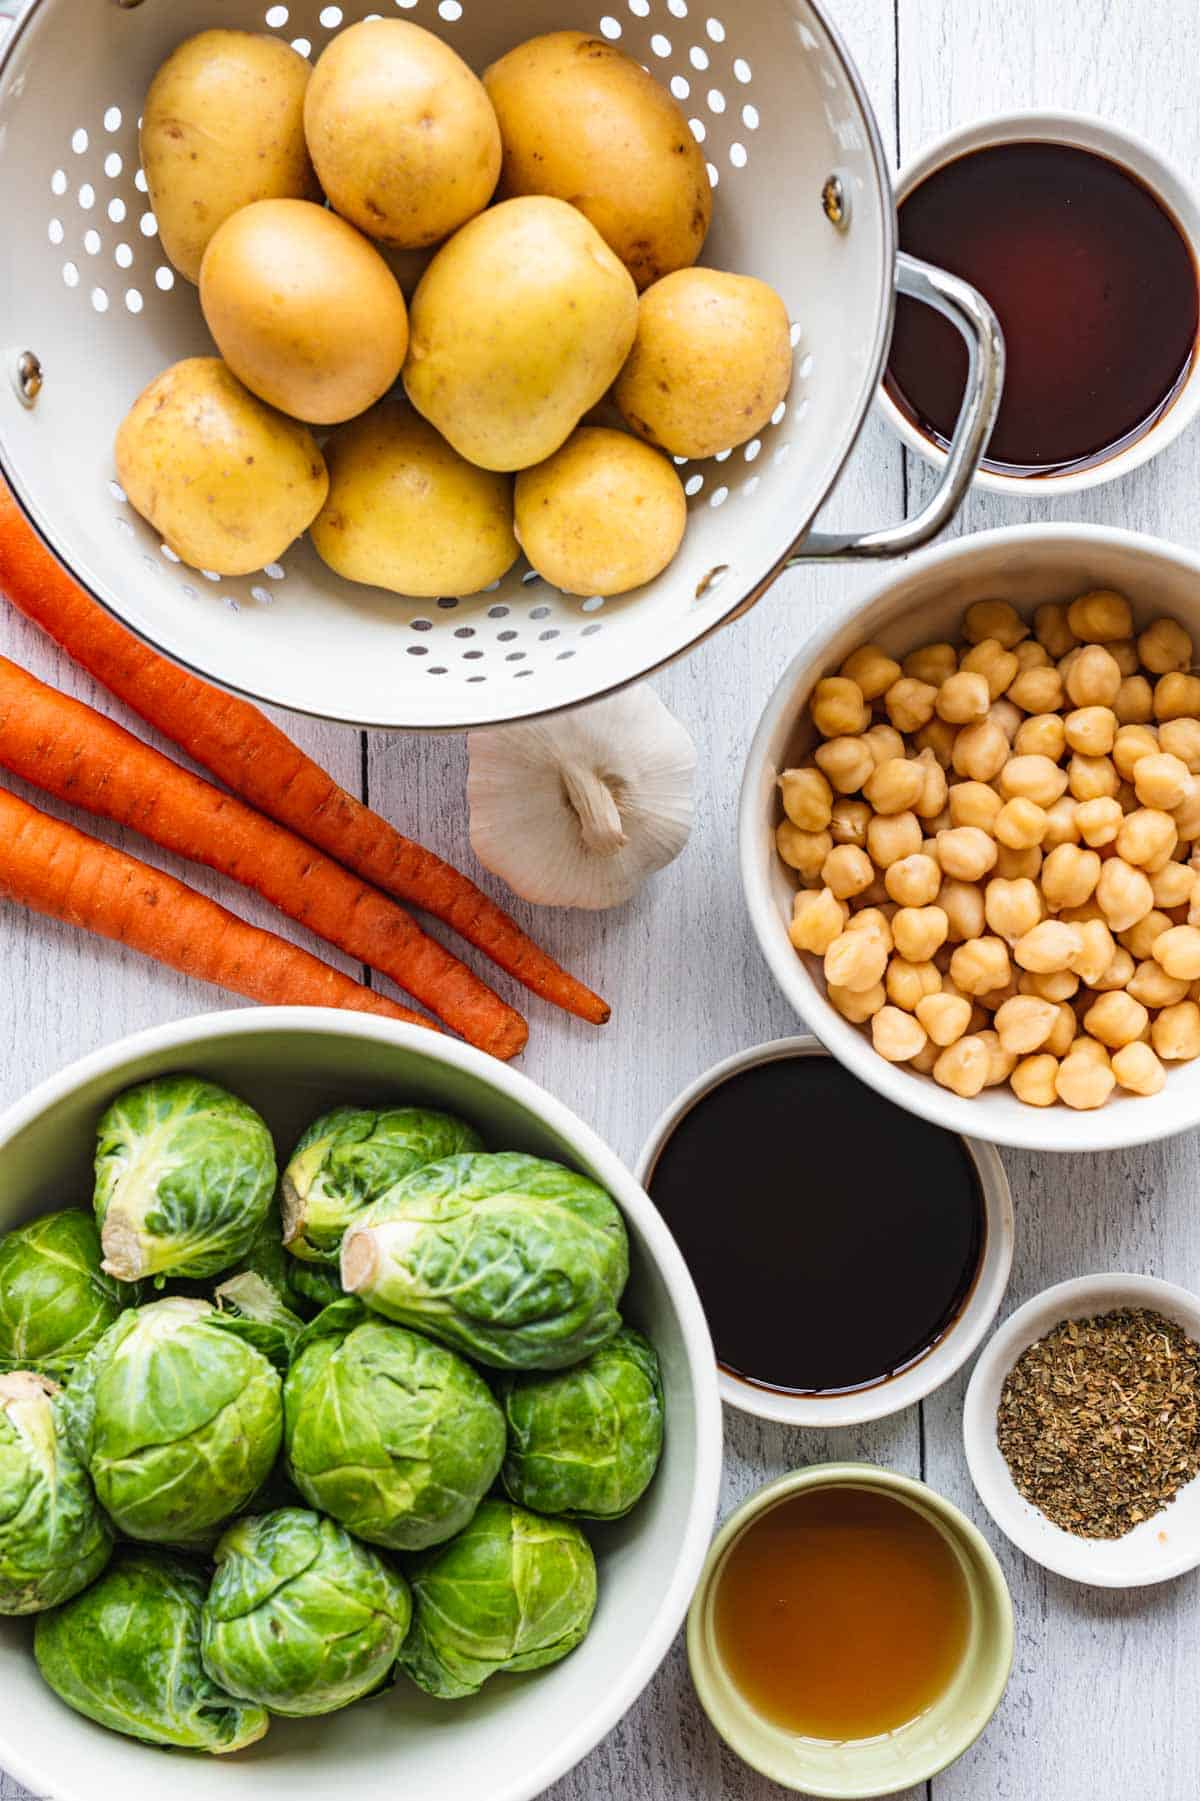 Brussels sprouts, potatoes, carrots, garlic, balsamic vinegar, coconut aminos, dried herbs, maple syrup, and legumes.